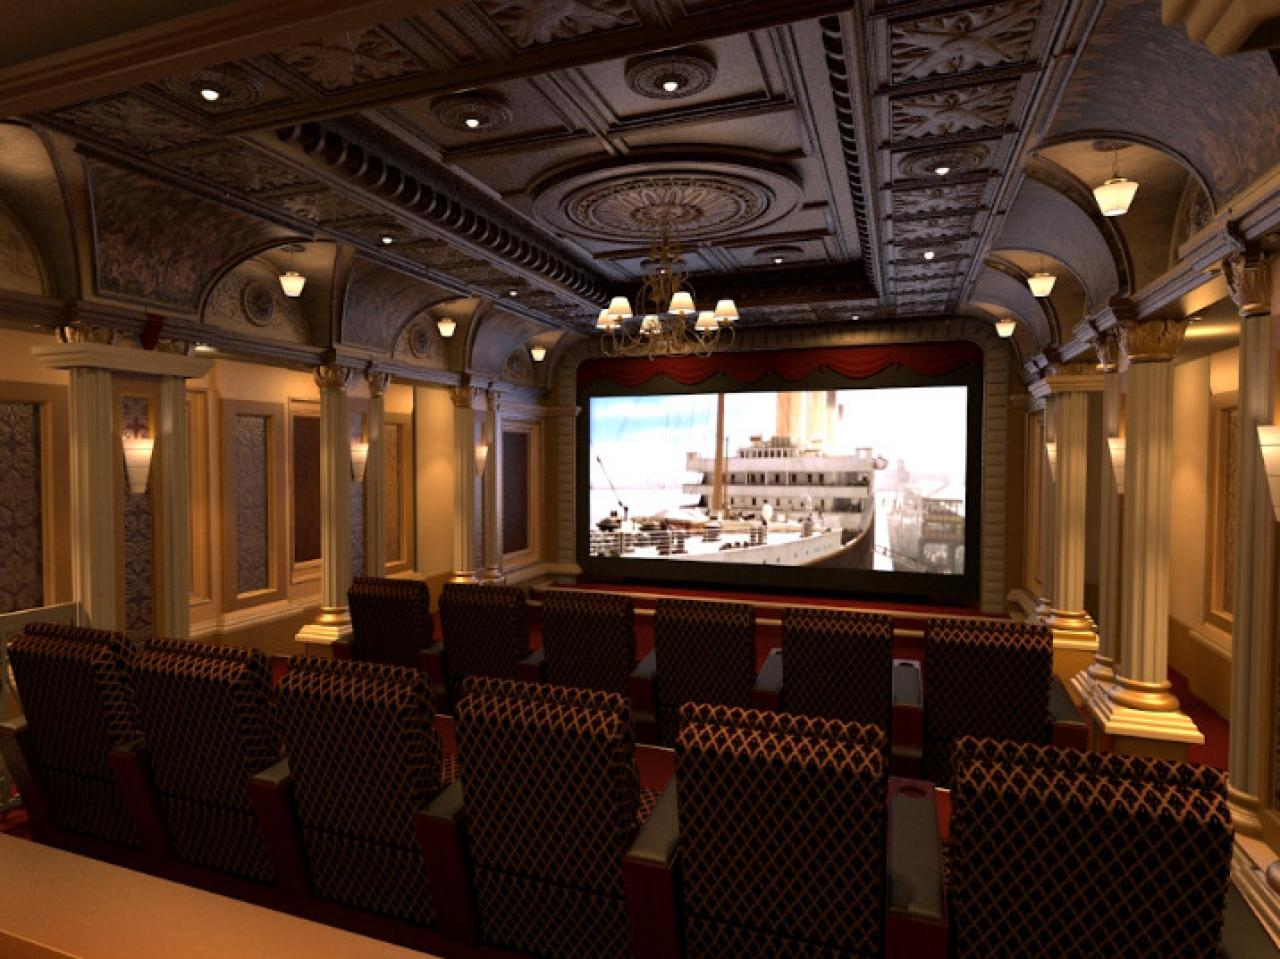 Building a home theater pictures options tips ideas hgtv Interior design ideas home theater